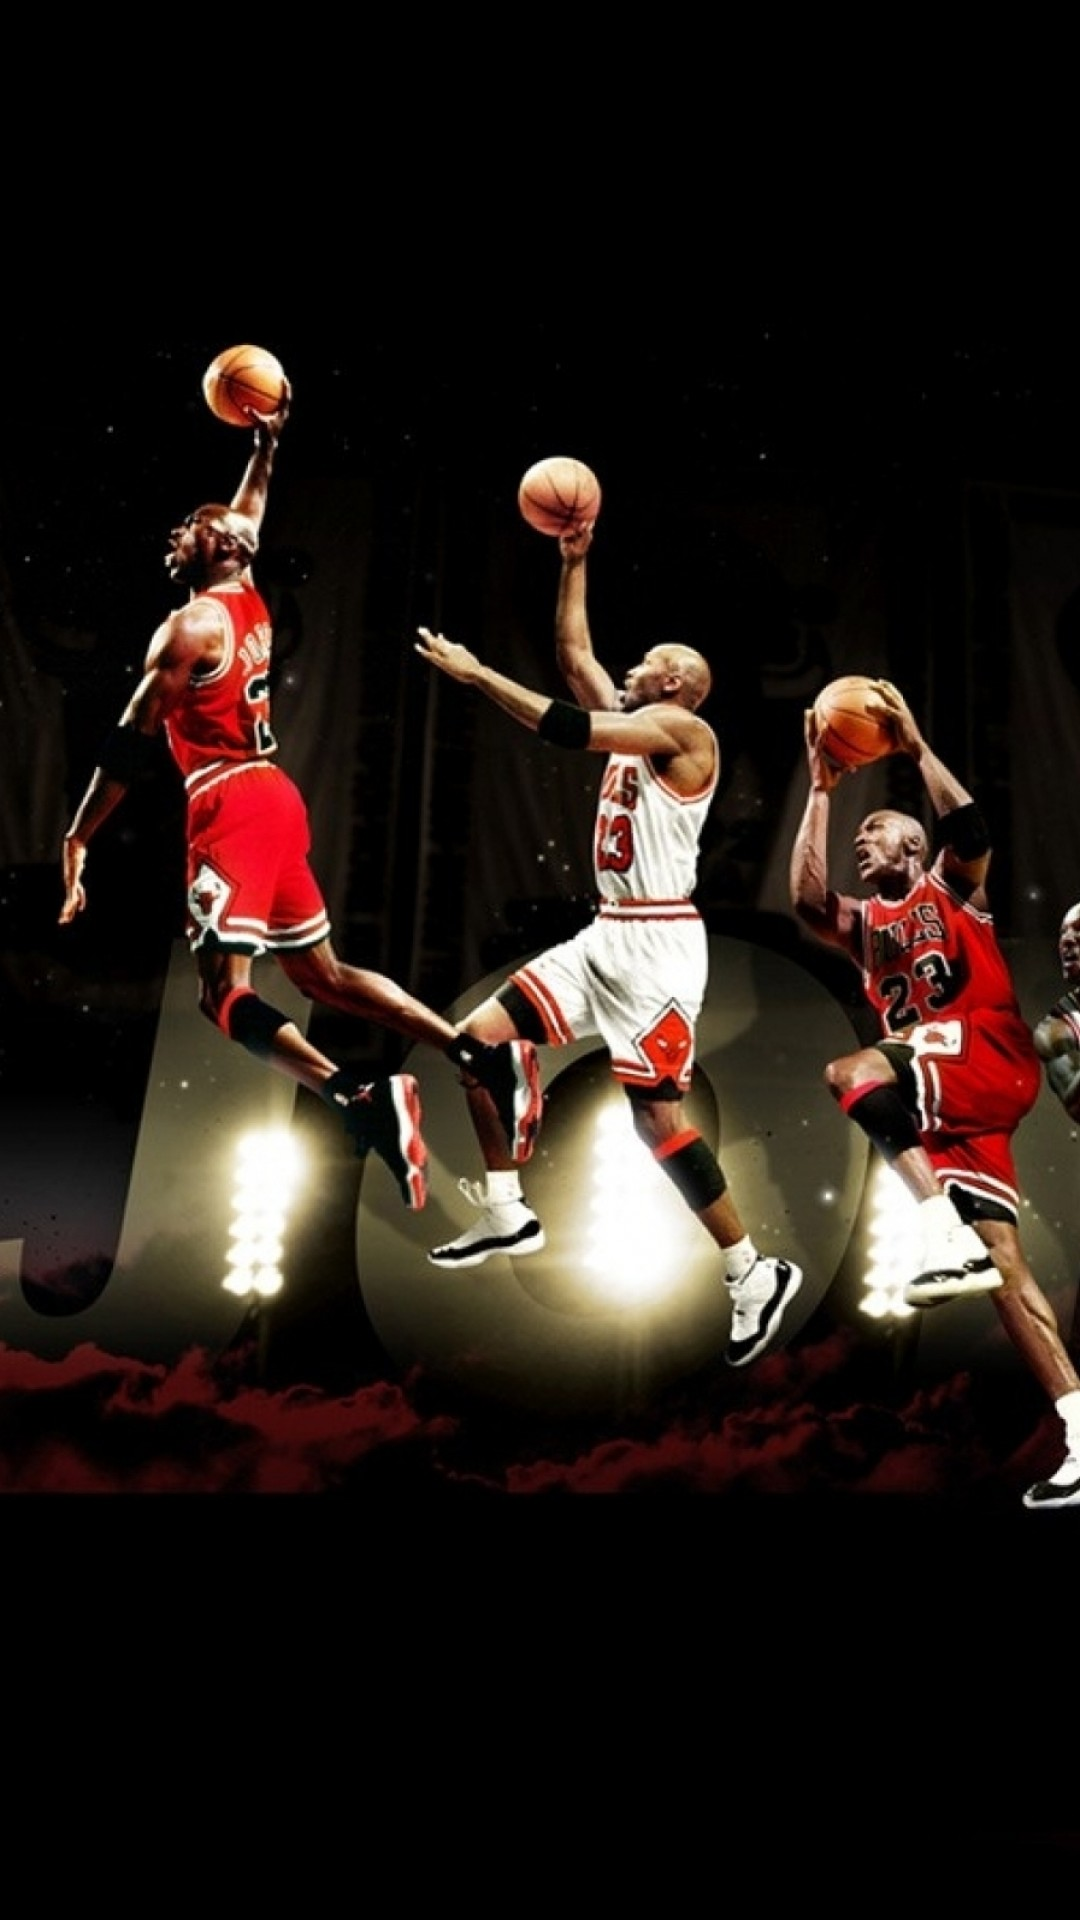 Cool Sports Wallpapers For IPhone (55+ Images